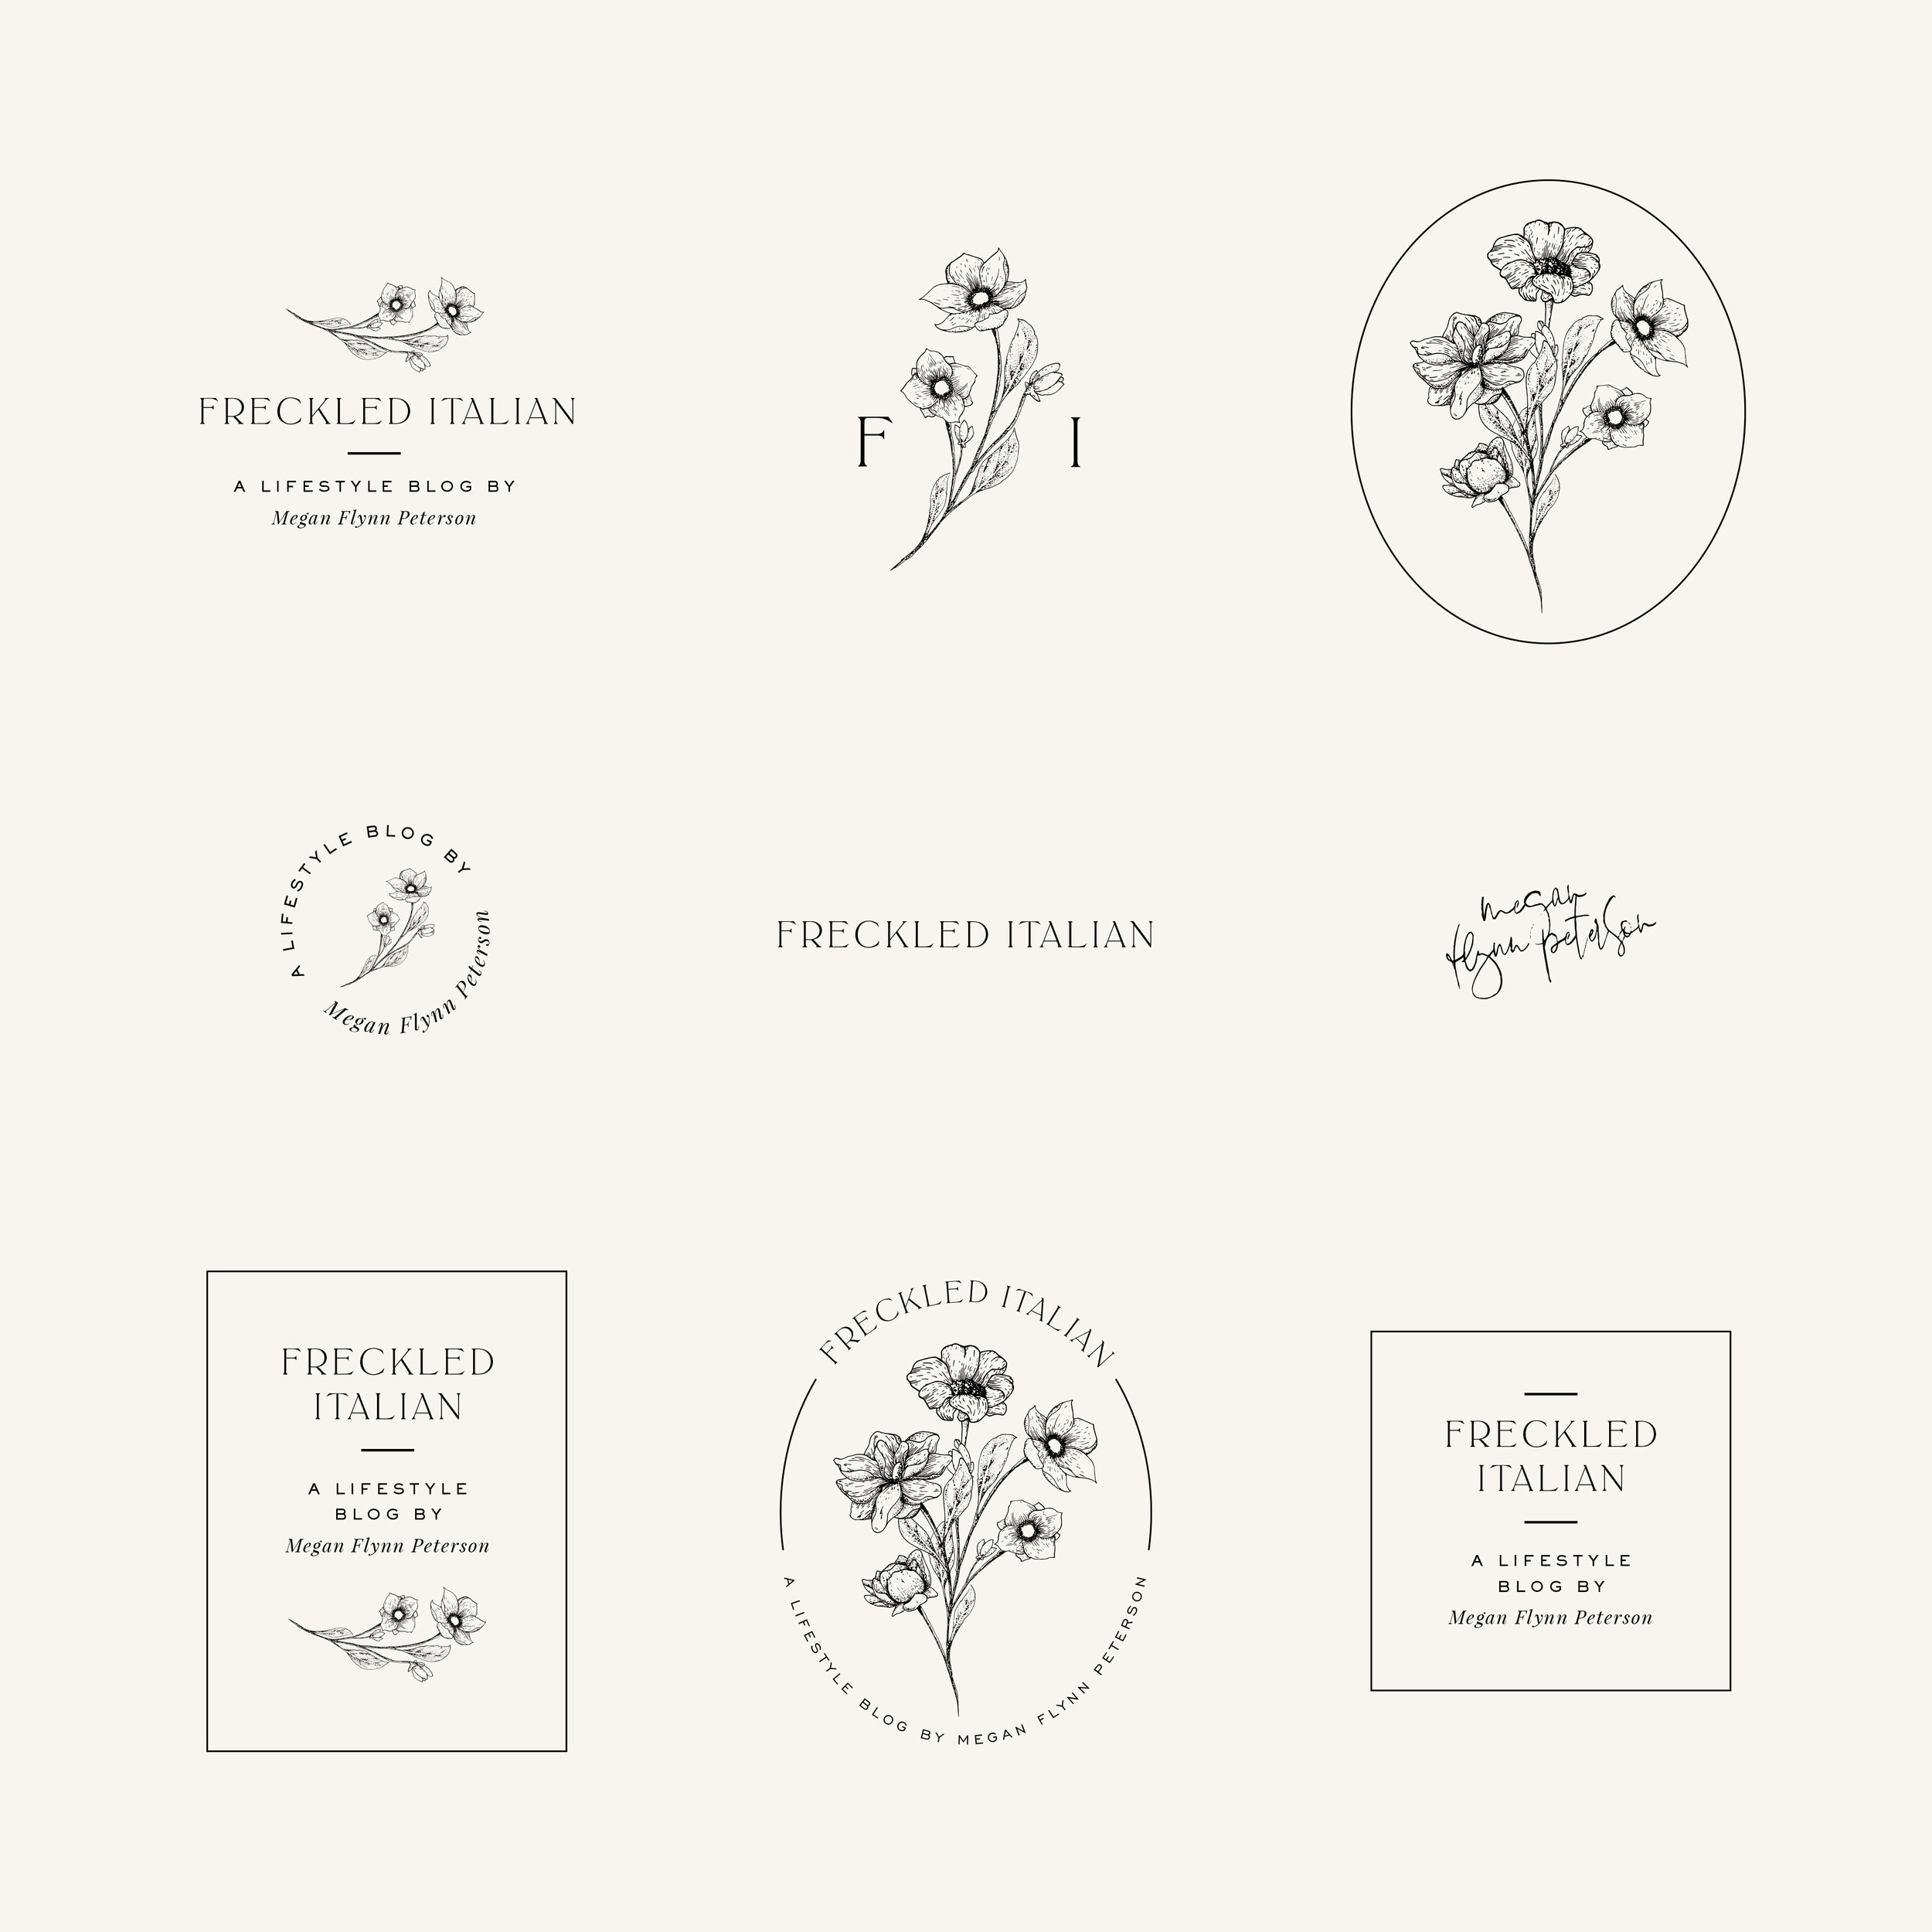 freckled italian: brand design by kelly james